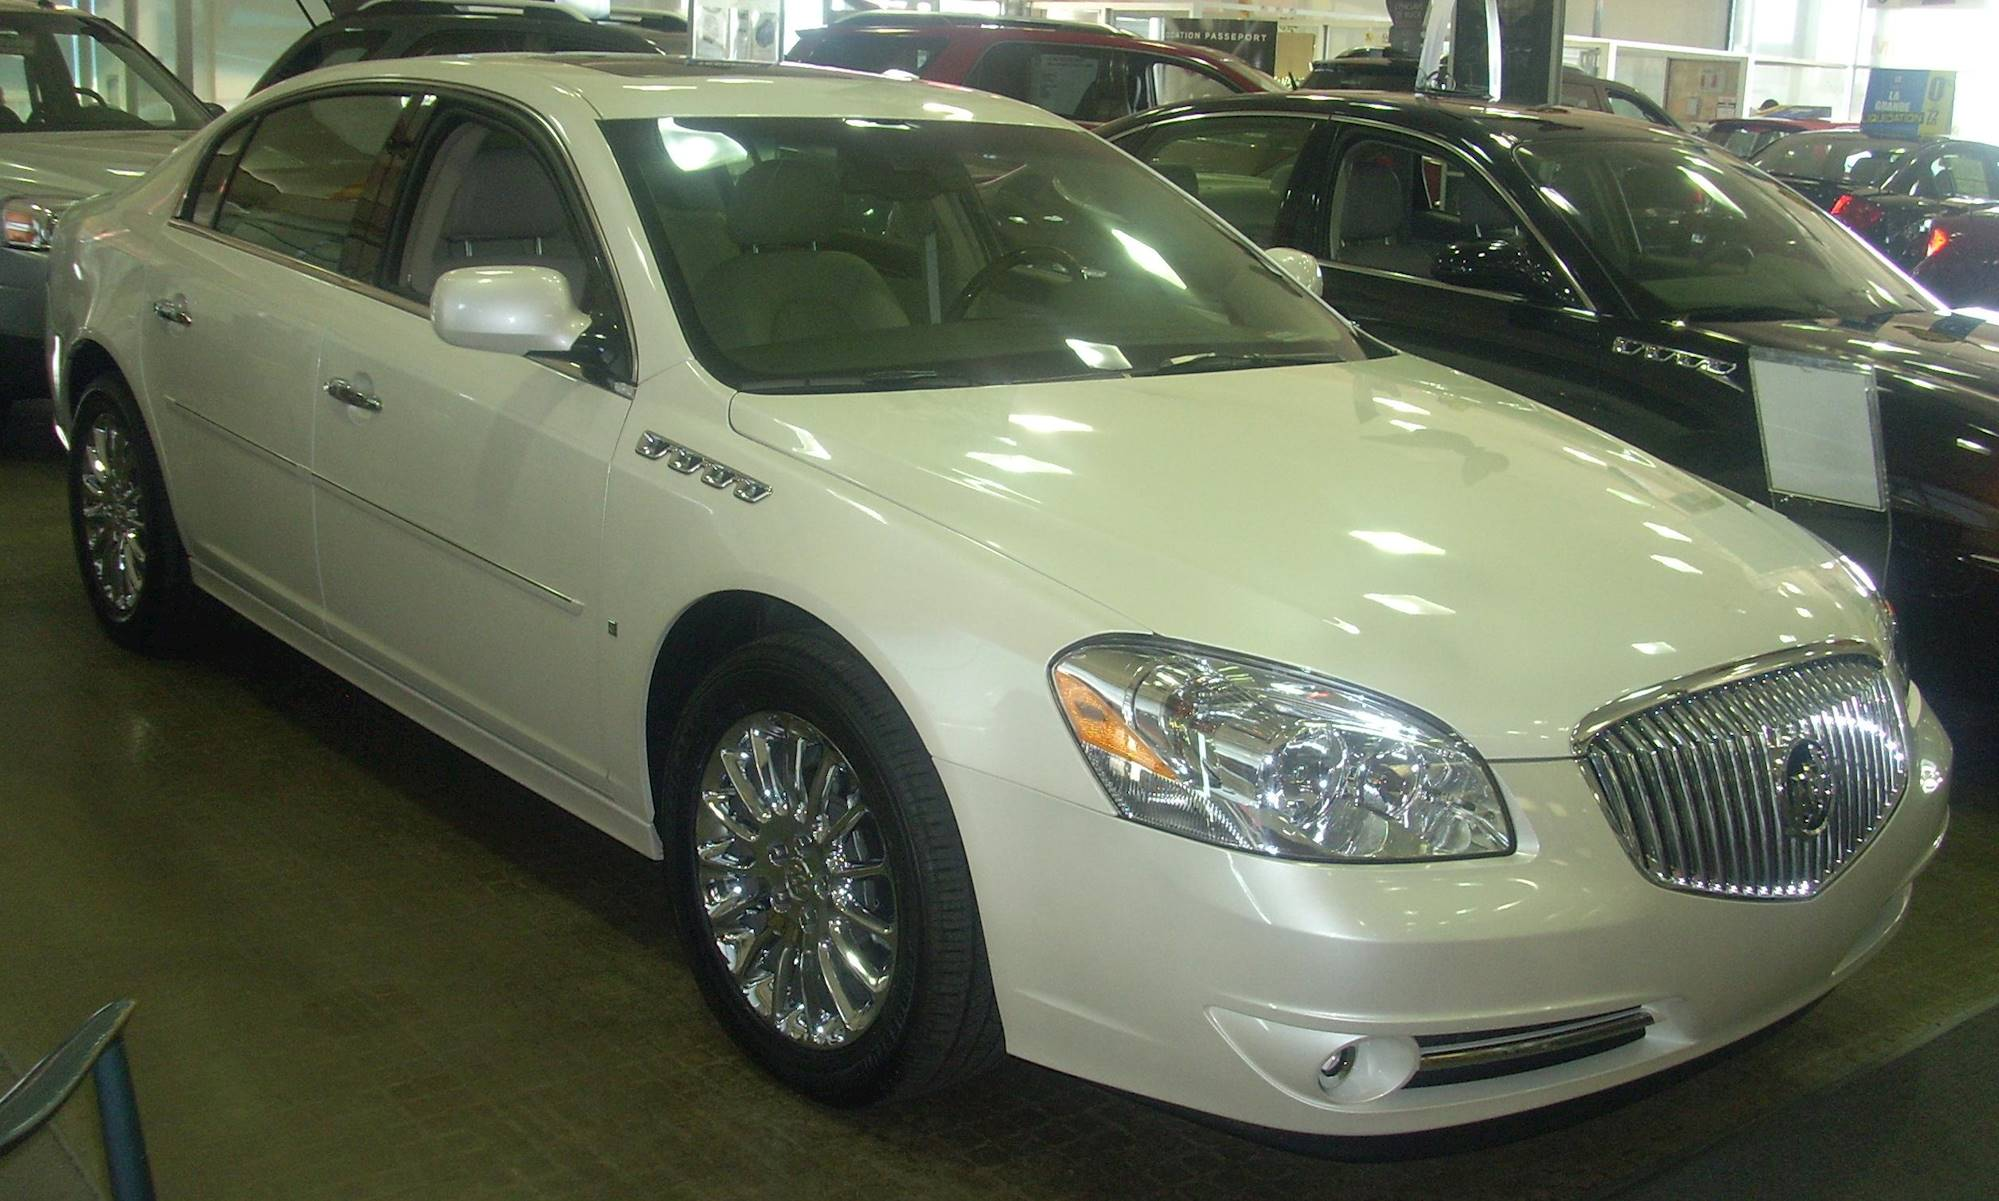 2008 buick lucerne cxl special edition sedan 3 8l v6 auto. Black Bedroom Furniture Sets. Home Design Ideas